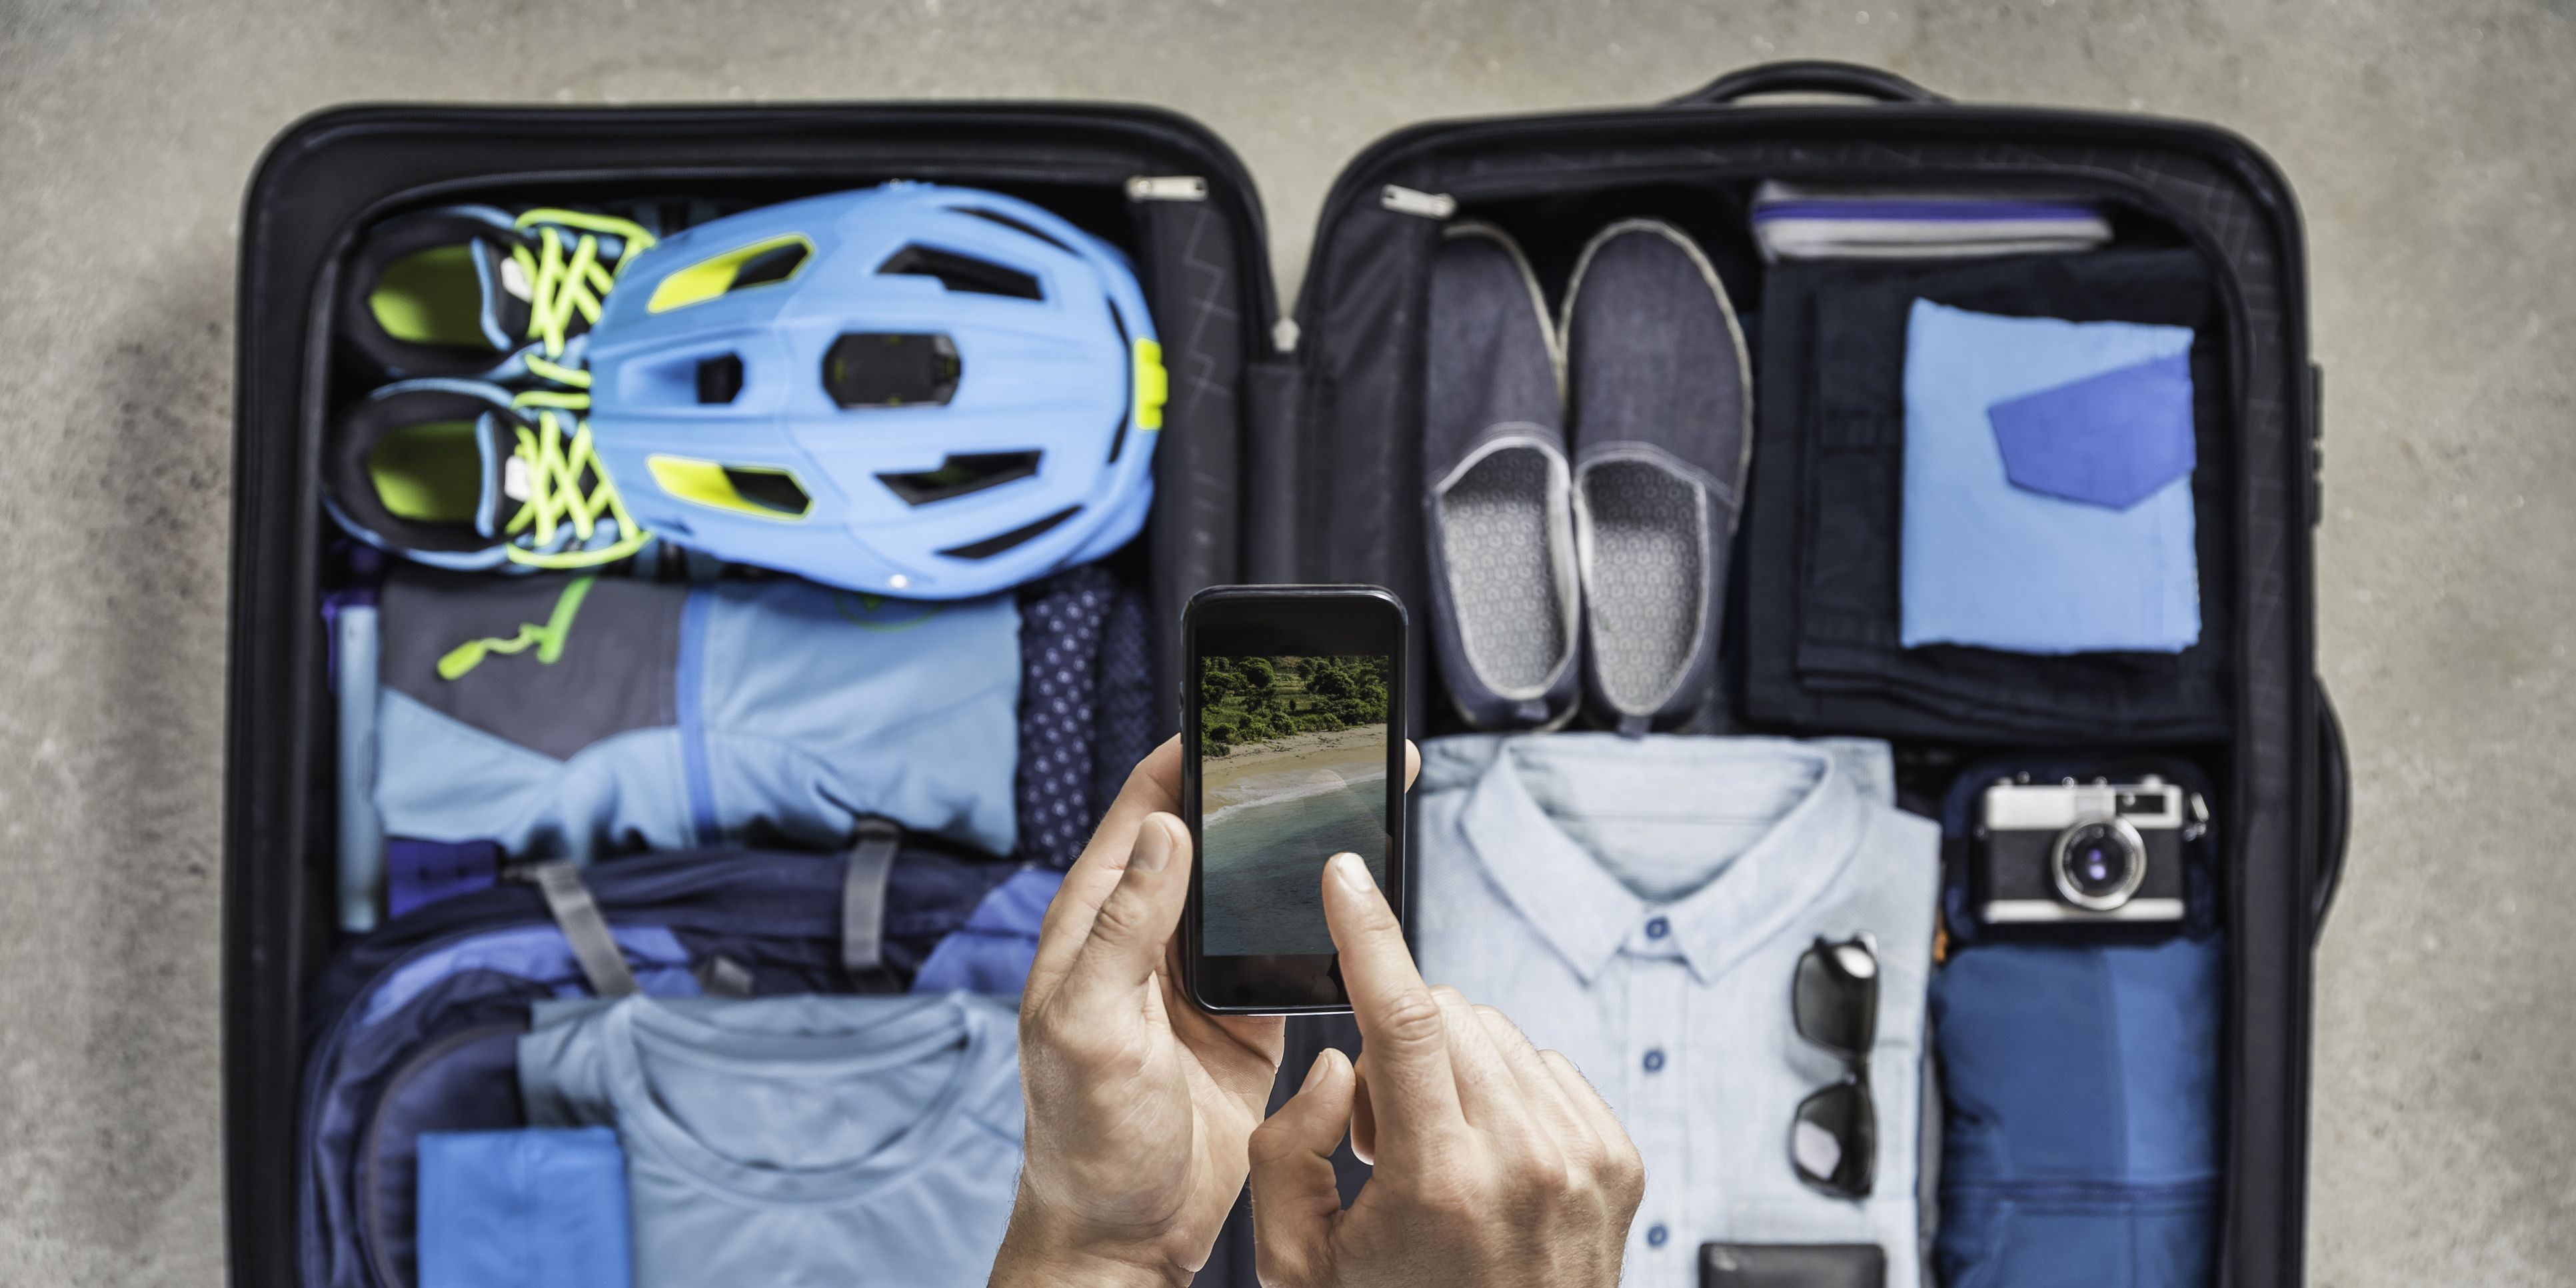 Overhead view of mans hands using smartphone touchscreen above packed suitcase with blue bike helmet, backpack, retro camera and shirt